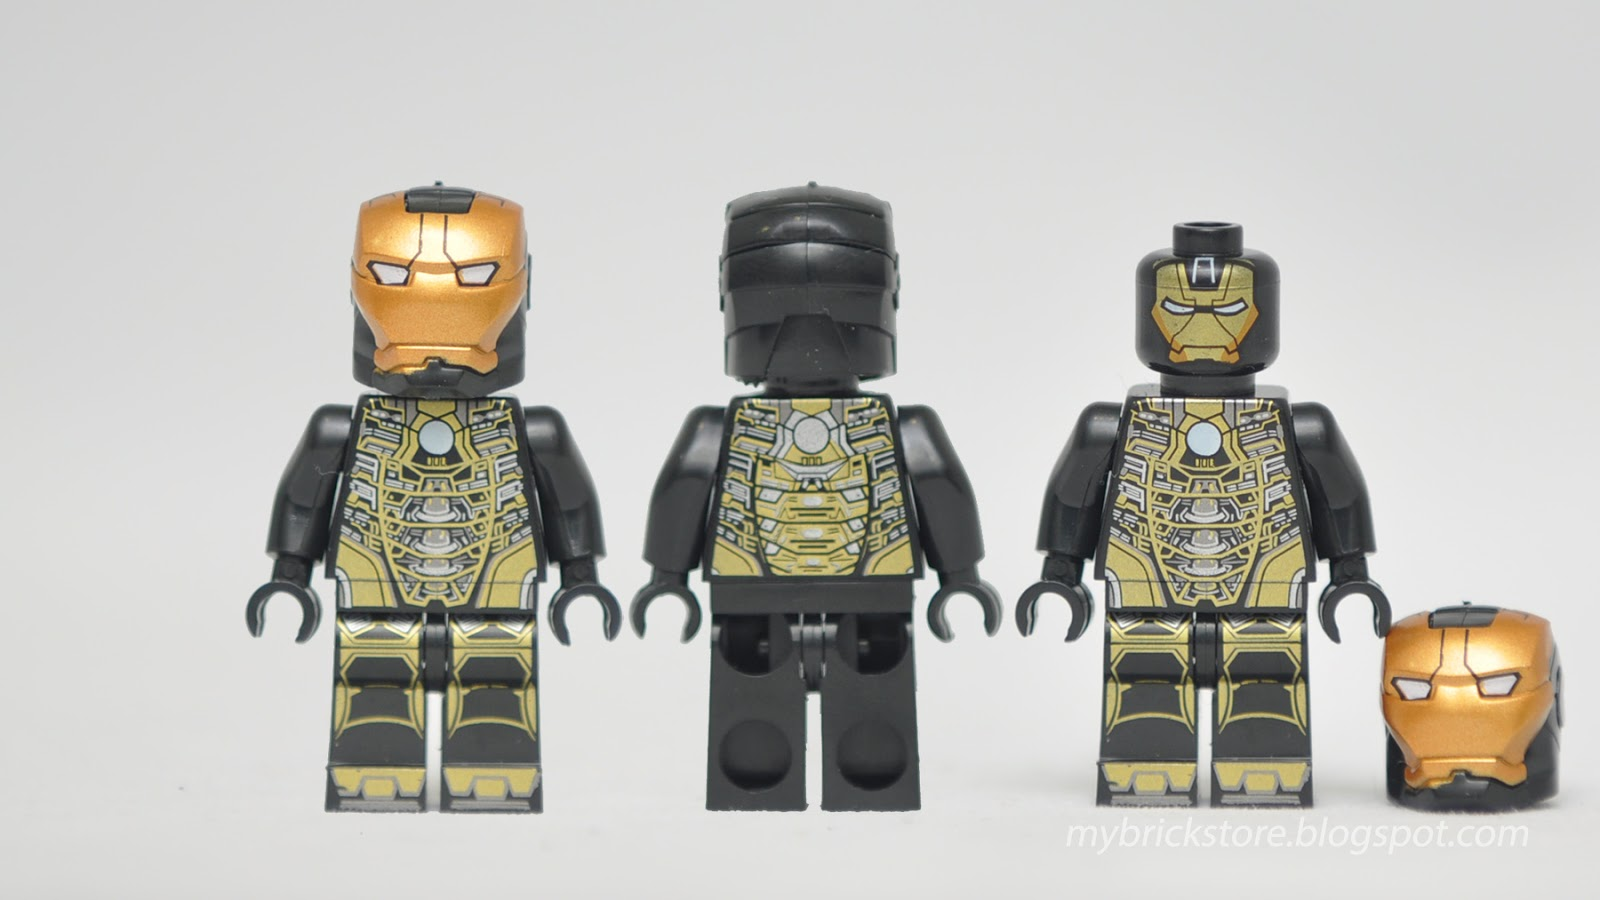 My brick store lego iron man minifigures by duo le pin - Iron man 3 lego ...